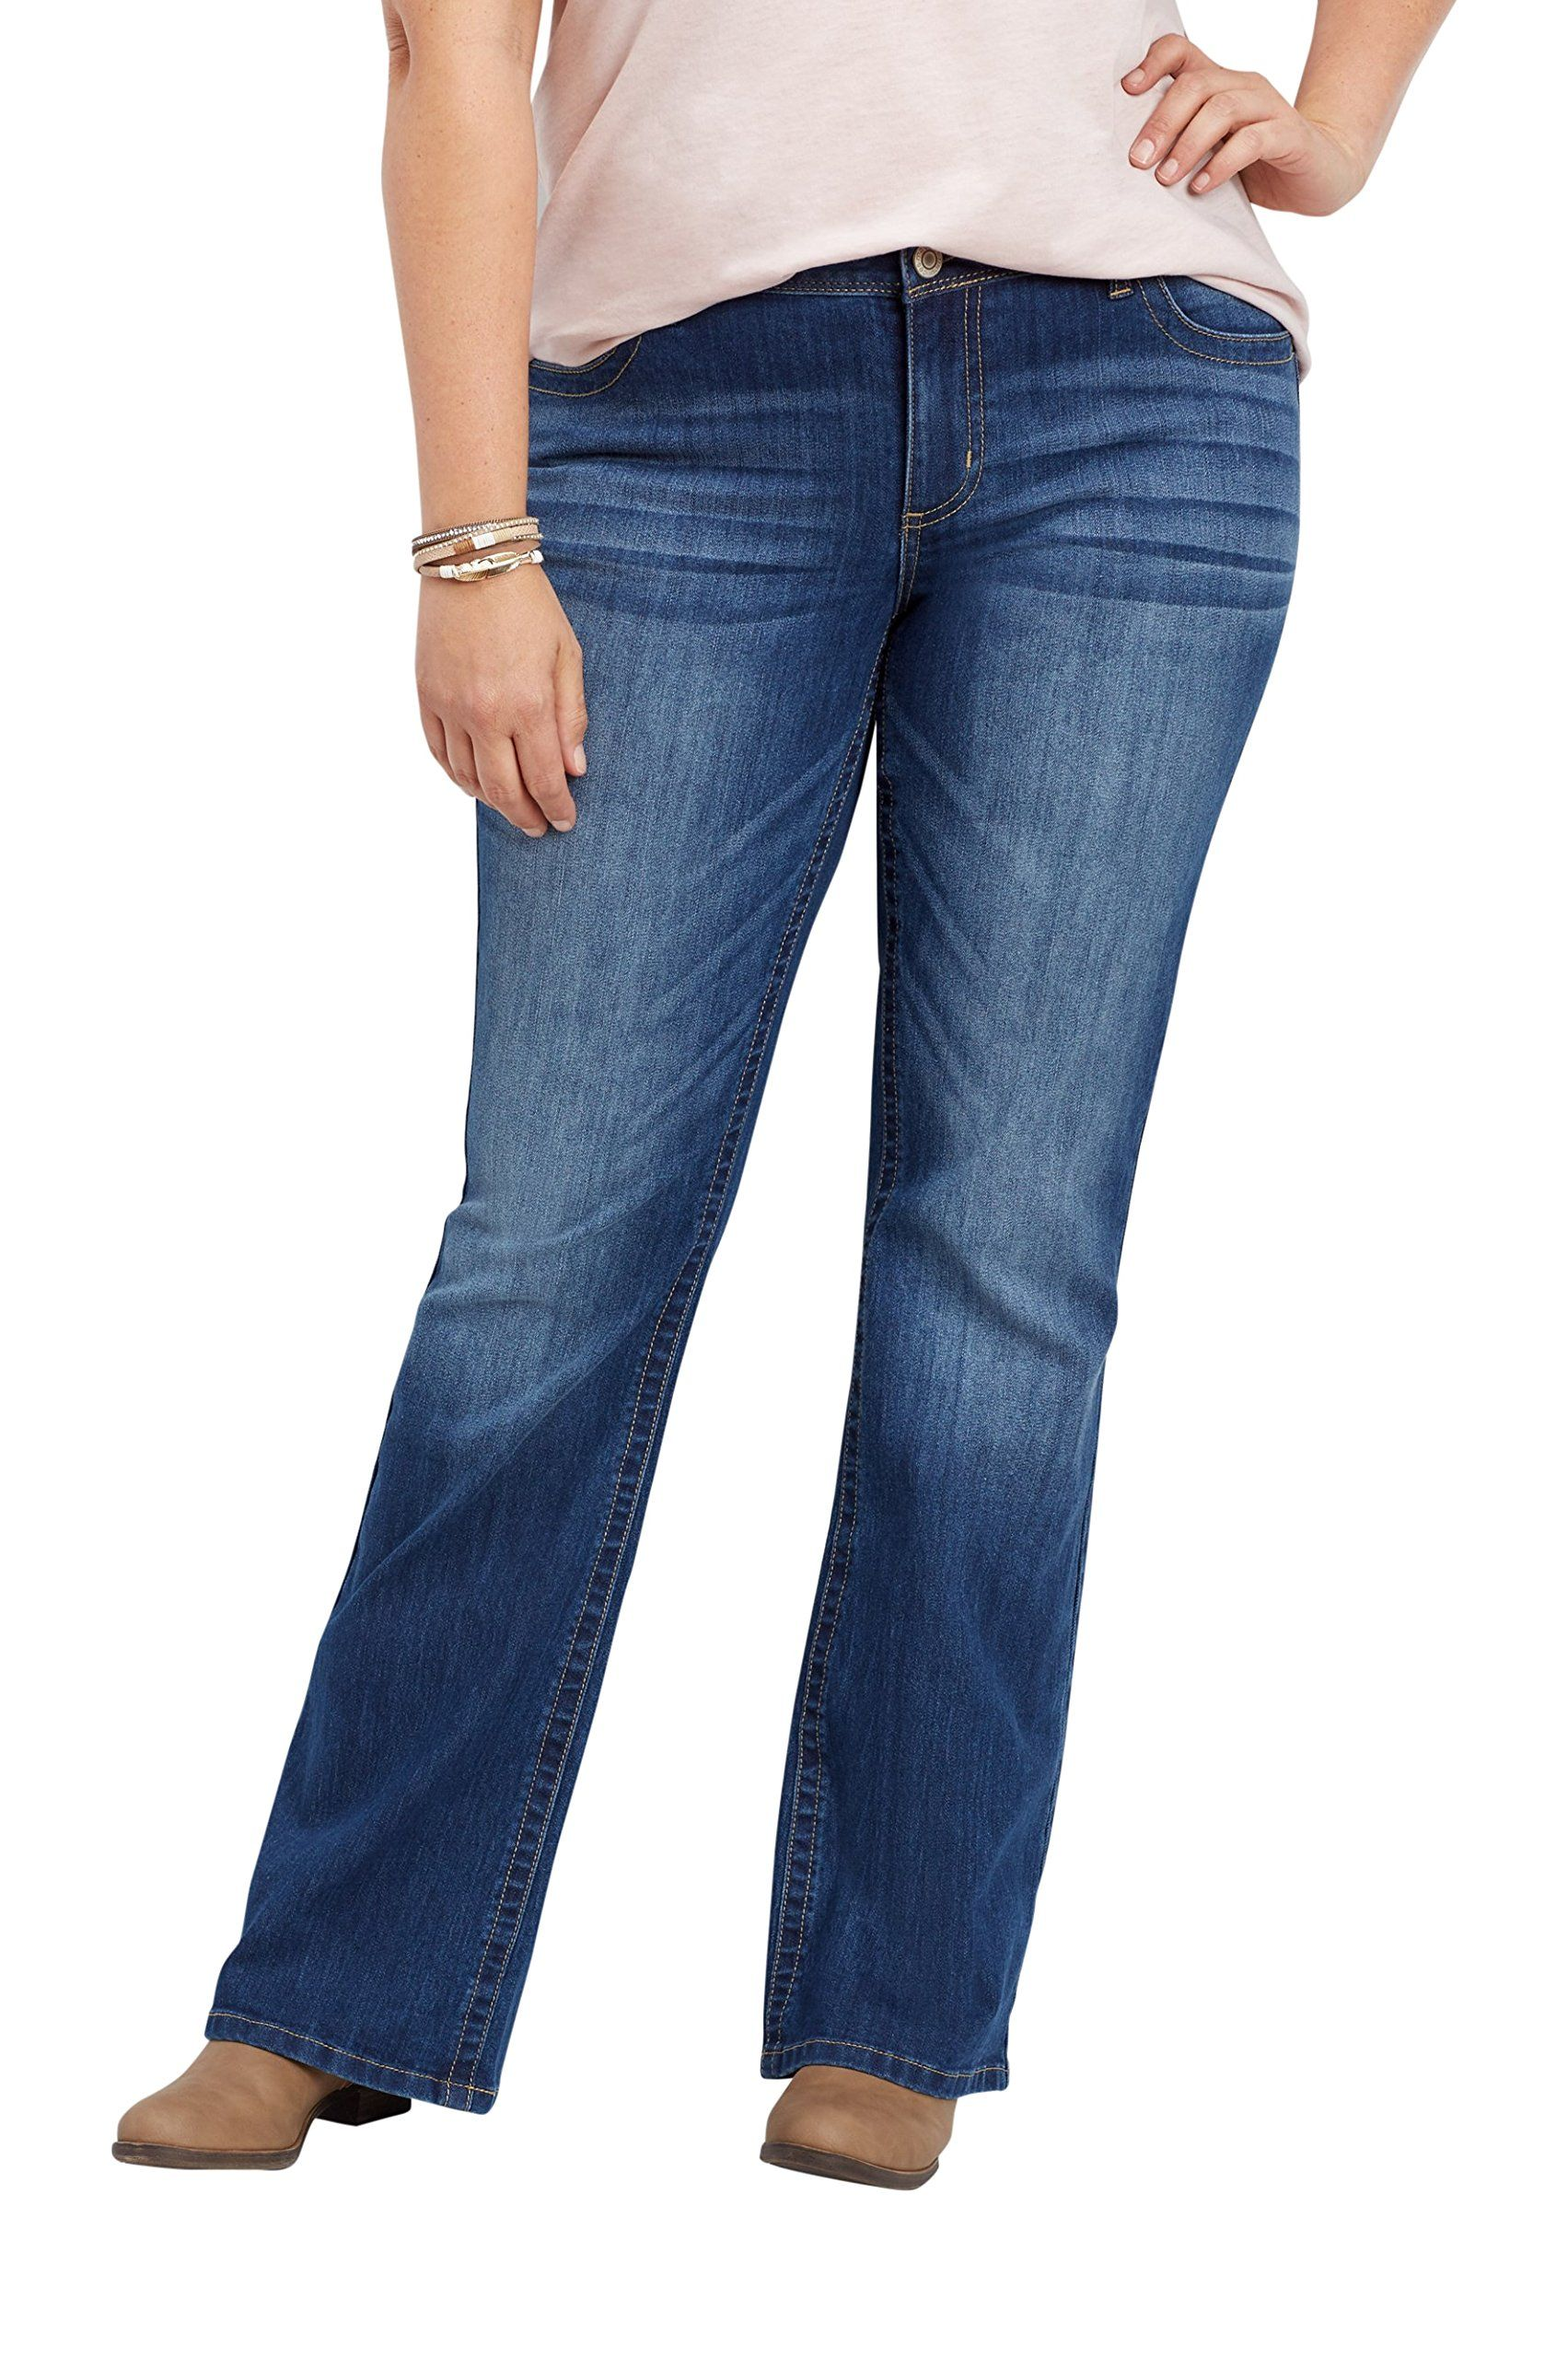 81fe7b41616 maurices Womens Plus Size Denimflex Medium Wash Bootcut Jean 18W Medium  Sandblast   See this great product. (This is an affiliate link)